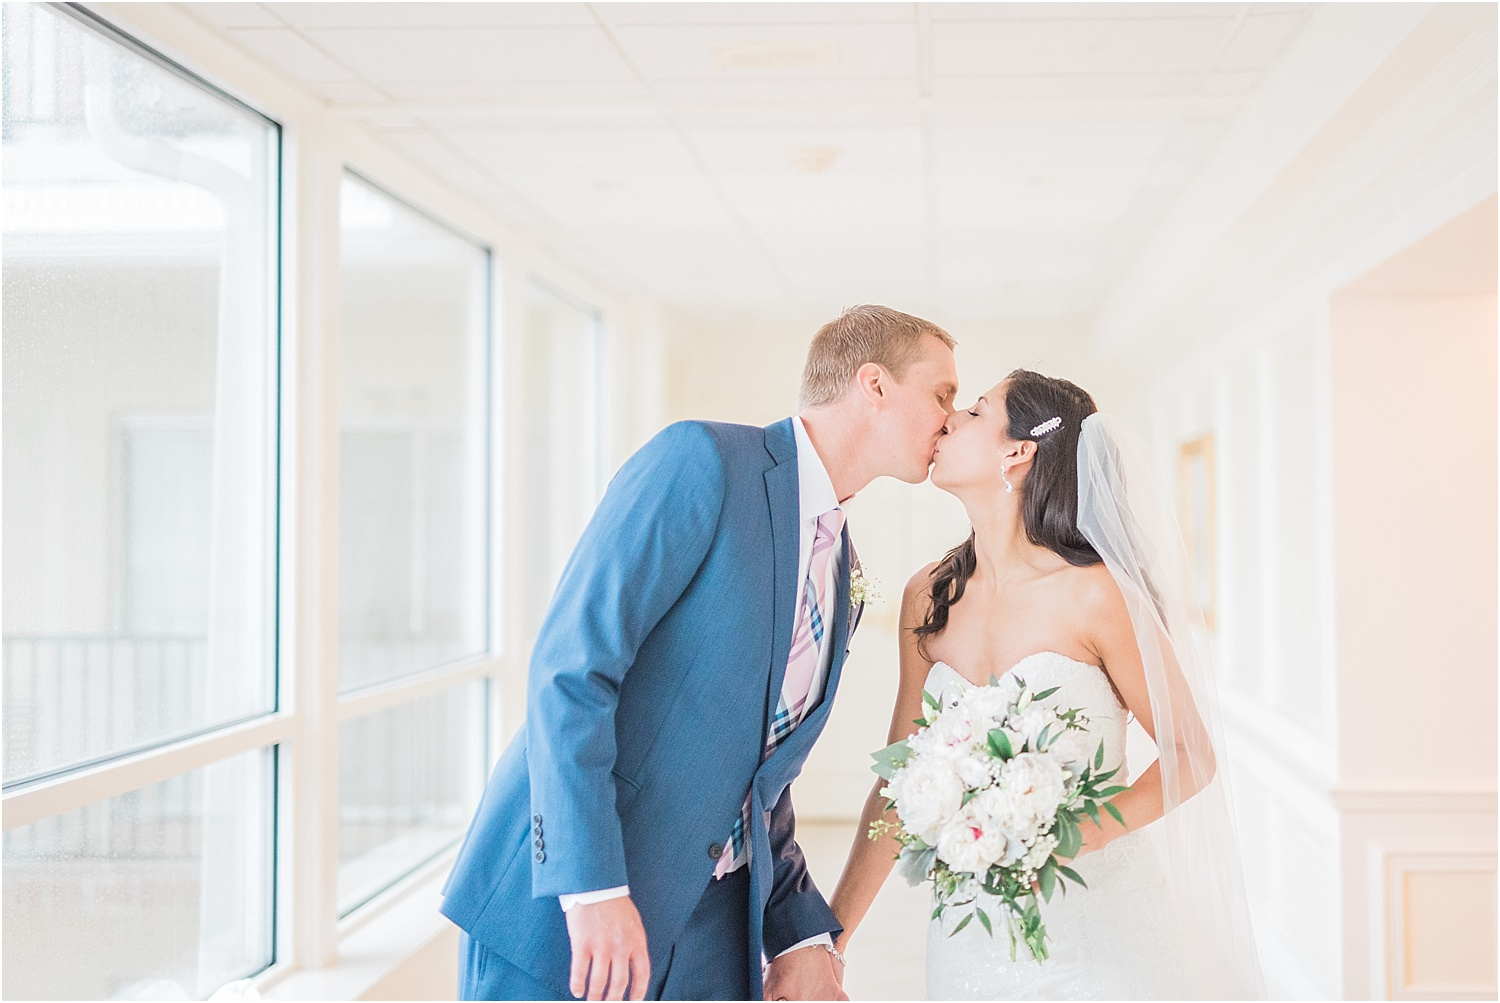 New Jersey wedding Photographer bright natural airy sweet soft wedding Photographer Faves-125.jpg